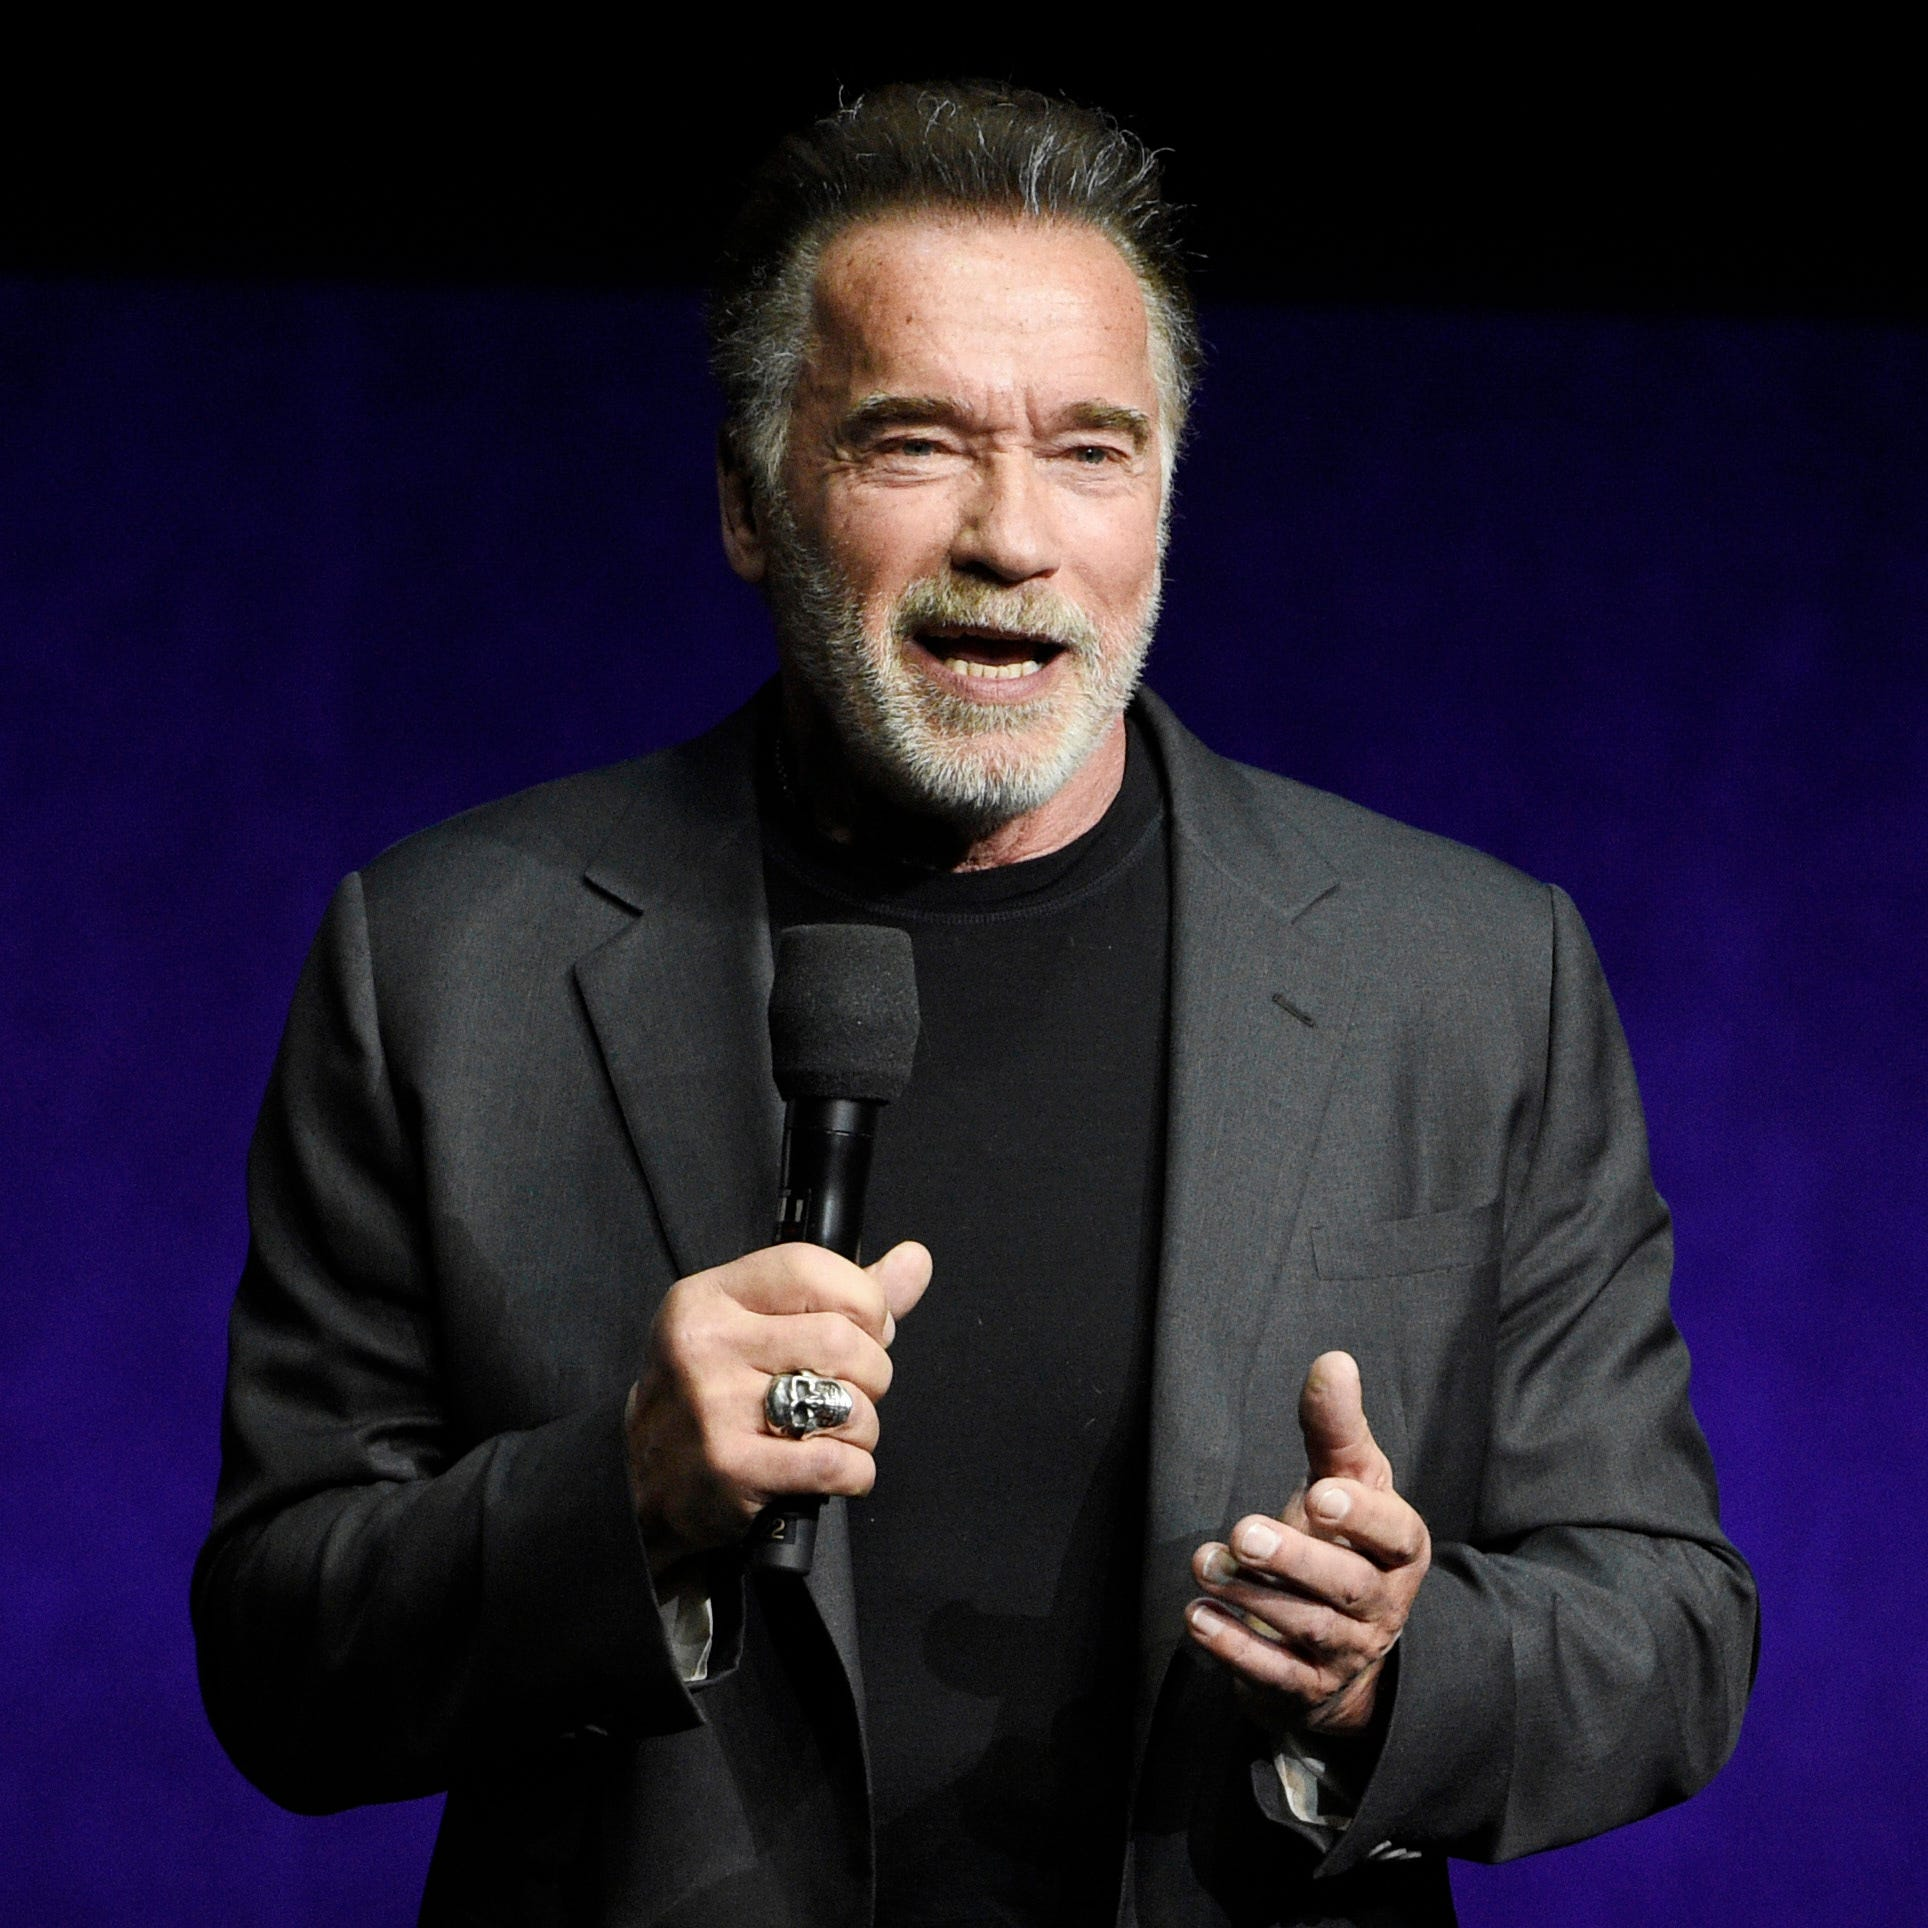 Schwarzenegger kicked in back at South Africa event; he shrugs it off